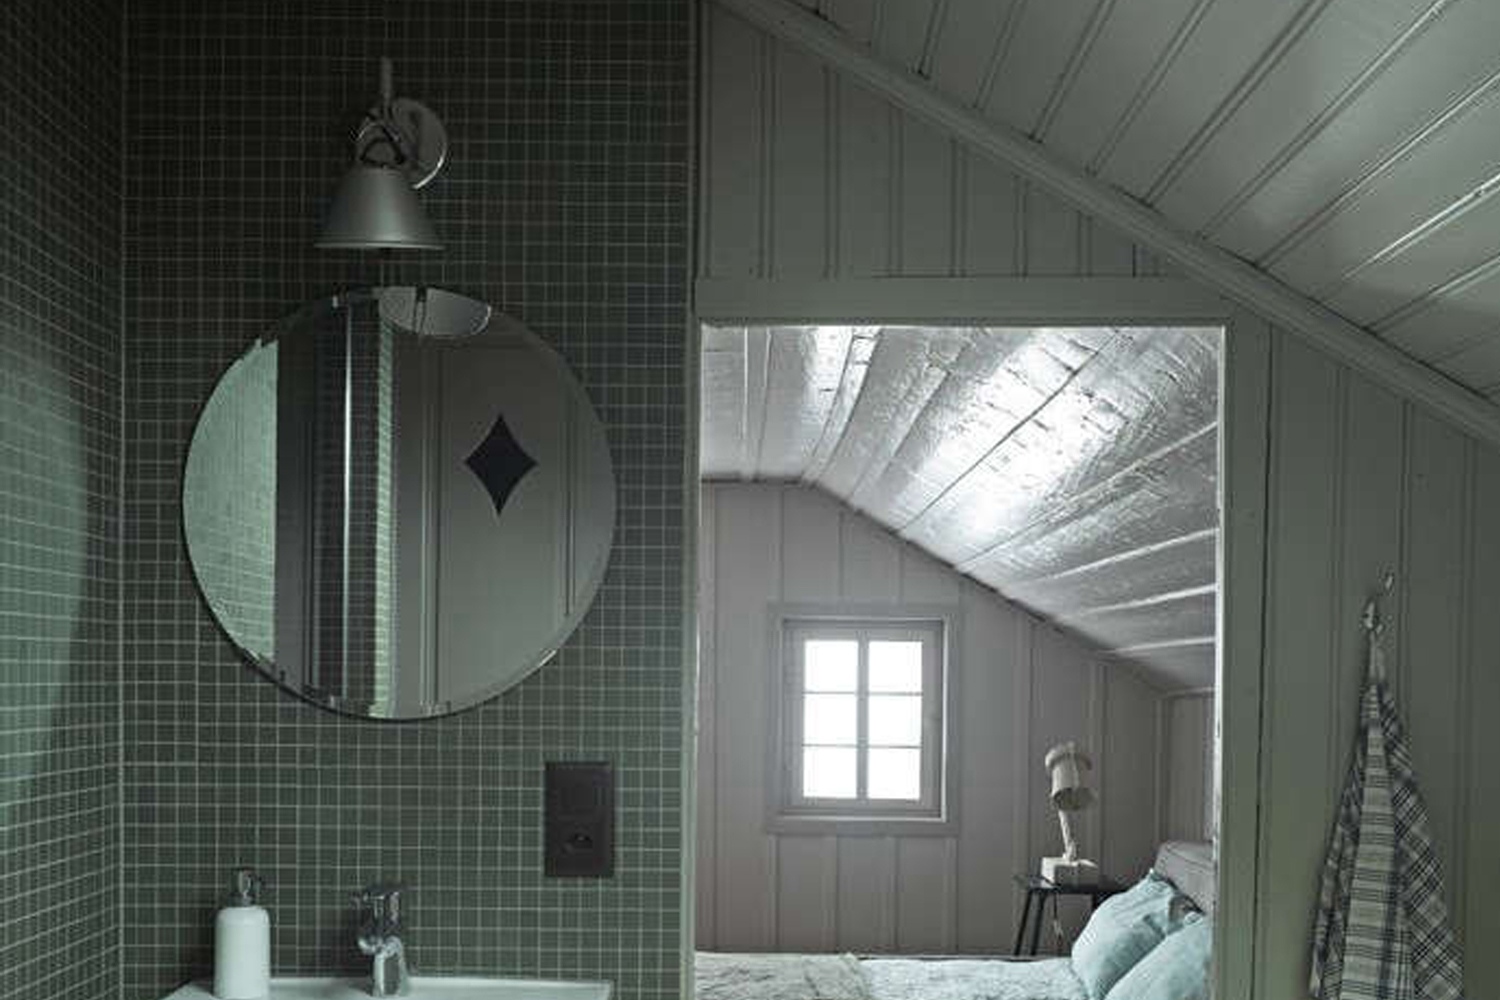 tolomeo wall sconce in situ